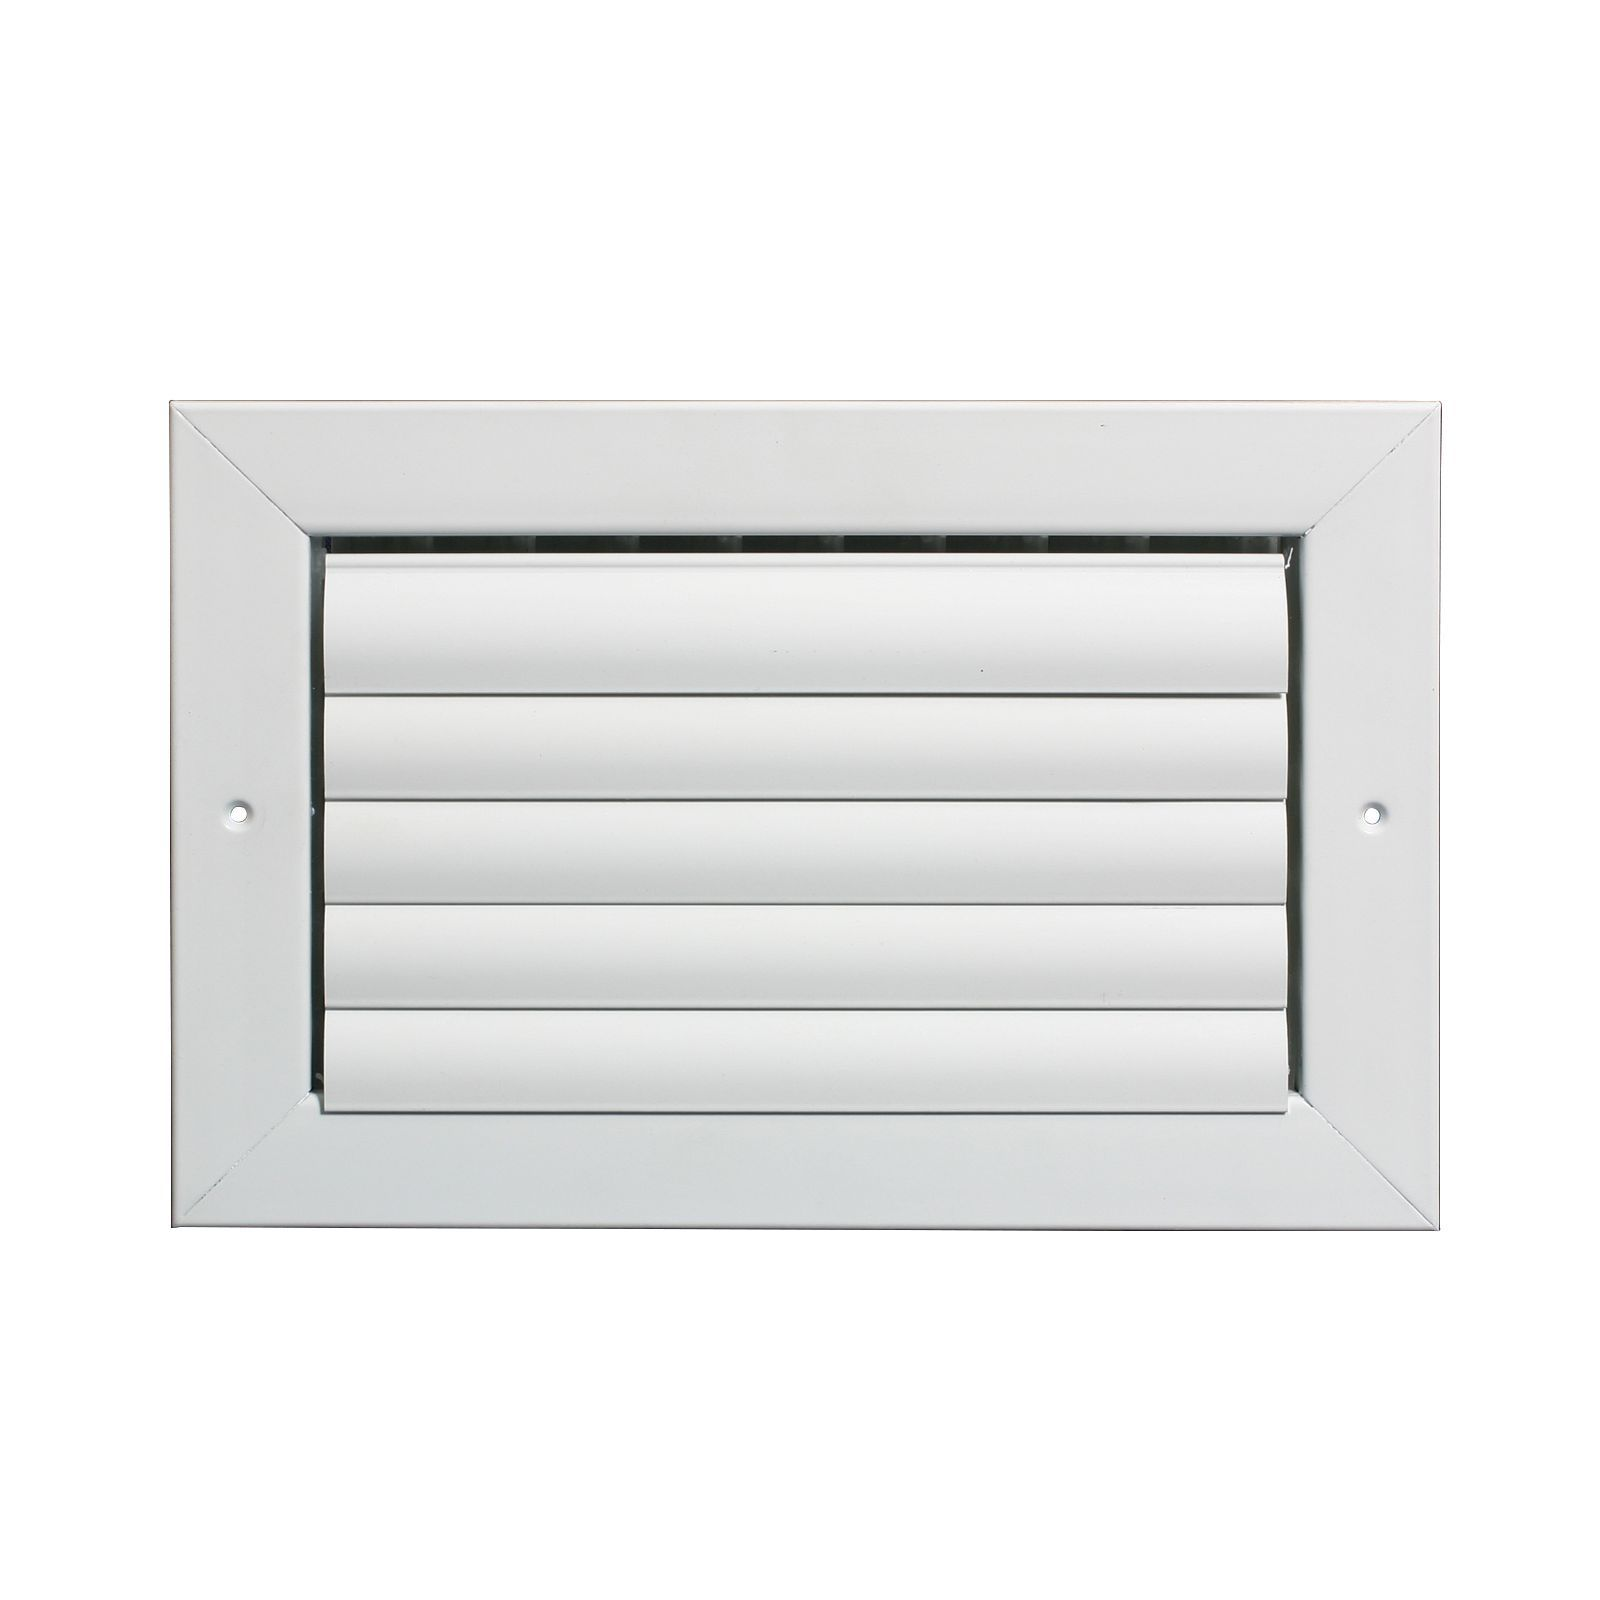 "Grille Tech CL1M1004 - Aluminum Ceiling 1-Way Deflection Supply, Multi-shutter 10"" X 4"" White"